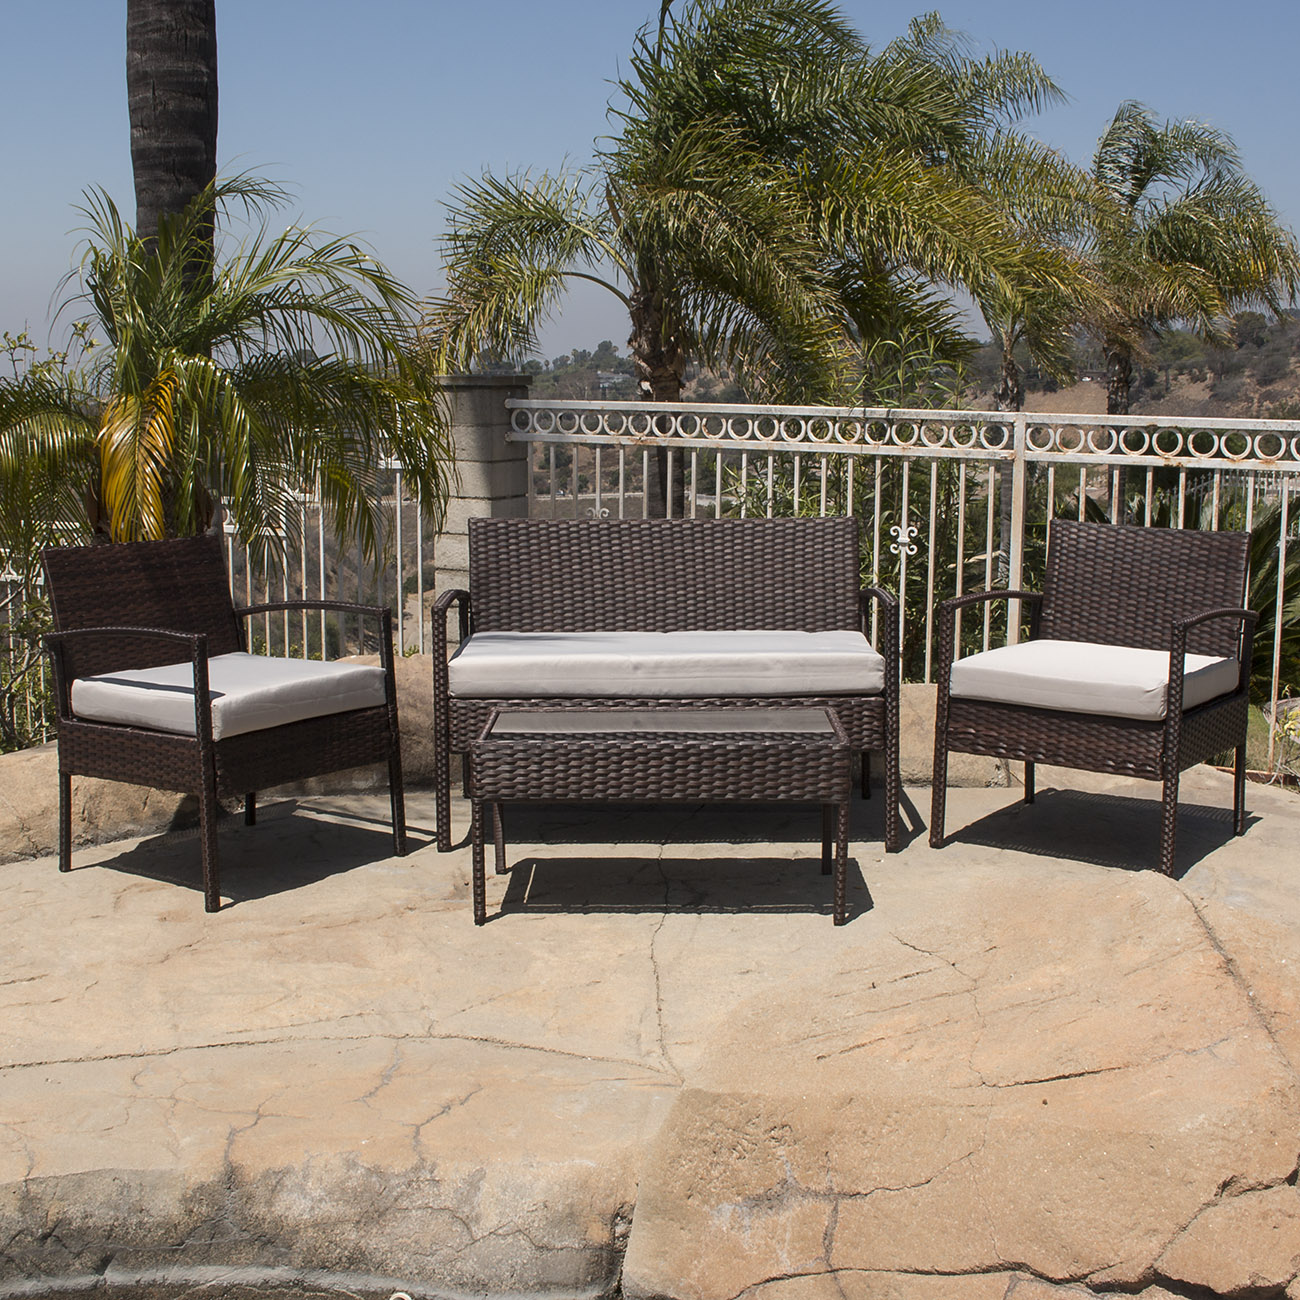 4PC Rattan Wicker Patio Furniture Set Sofa Chair +Table